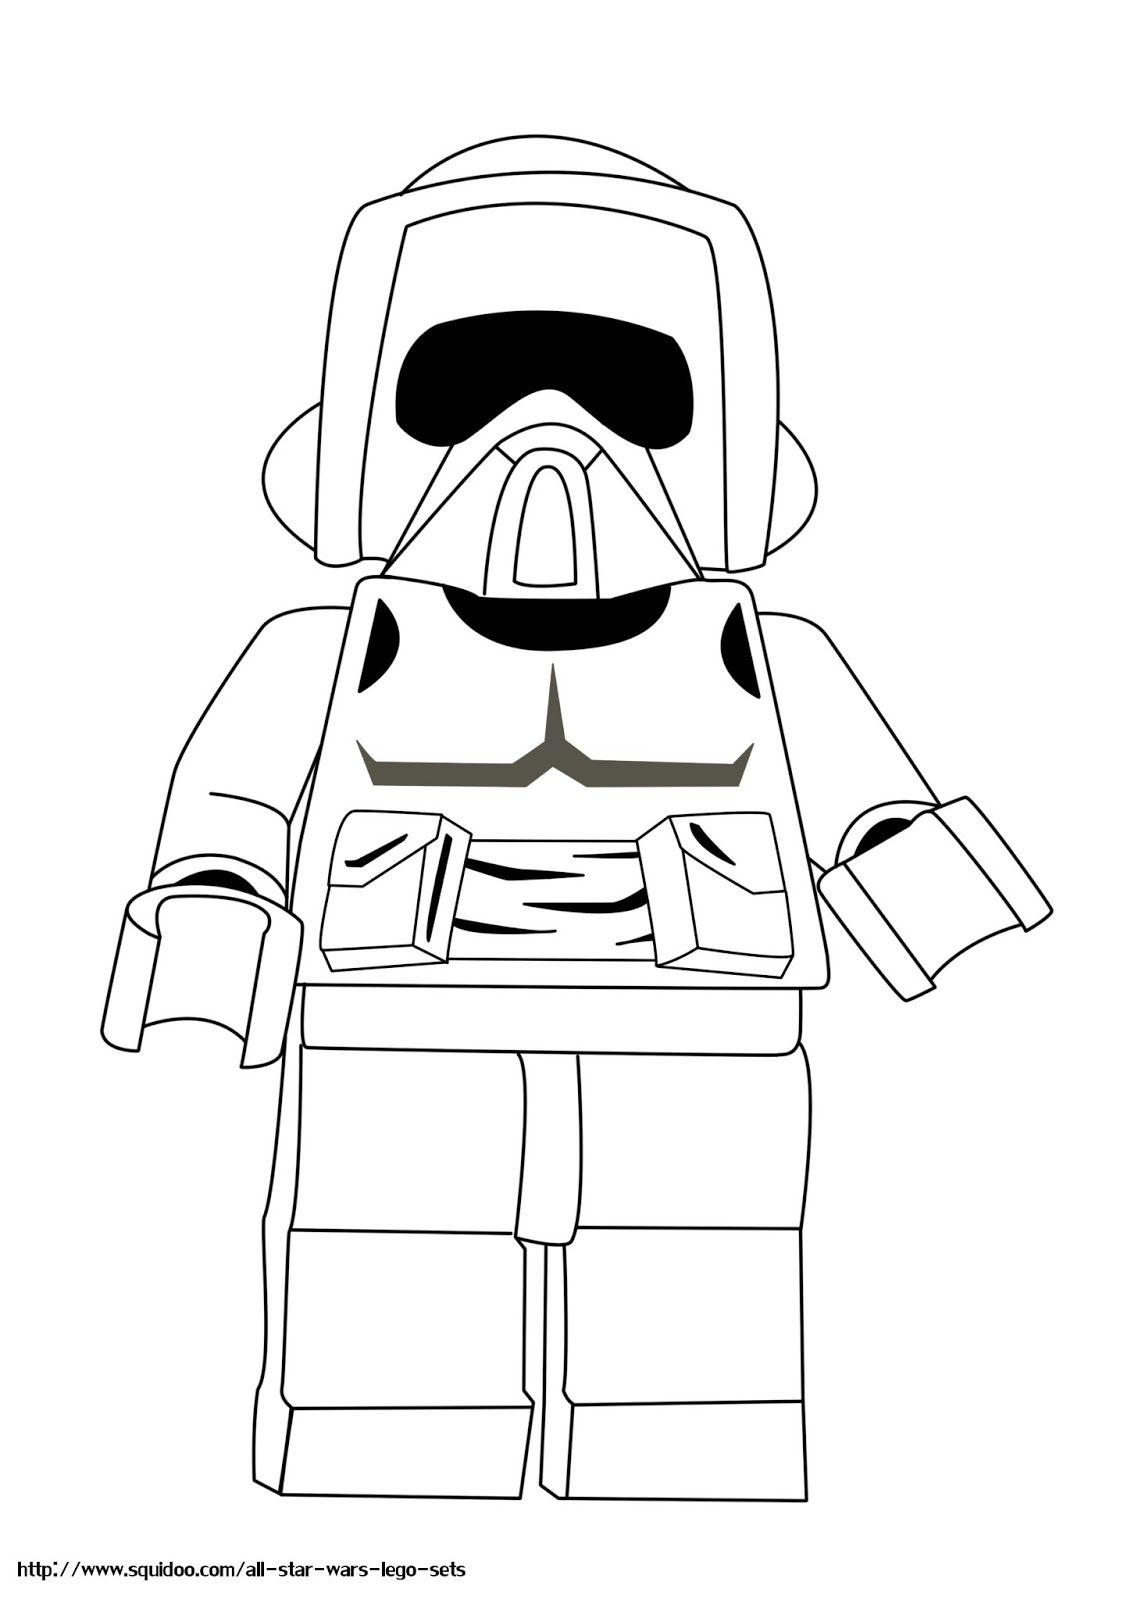 Malvorlagen Kostenlos Star Wars: LEGO Star Wars Printable Coloring Pages, Lego Star Wars